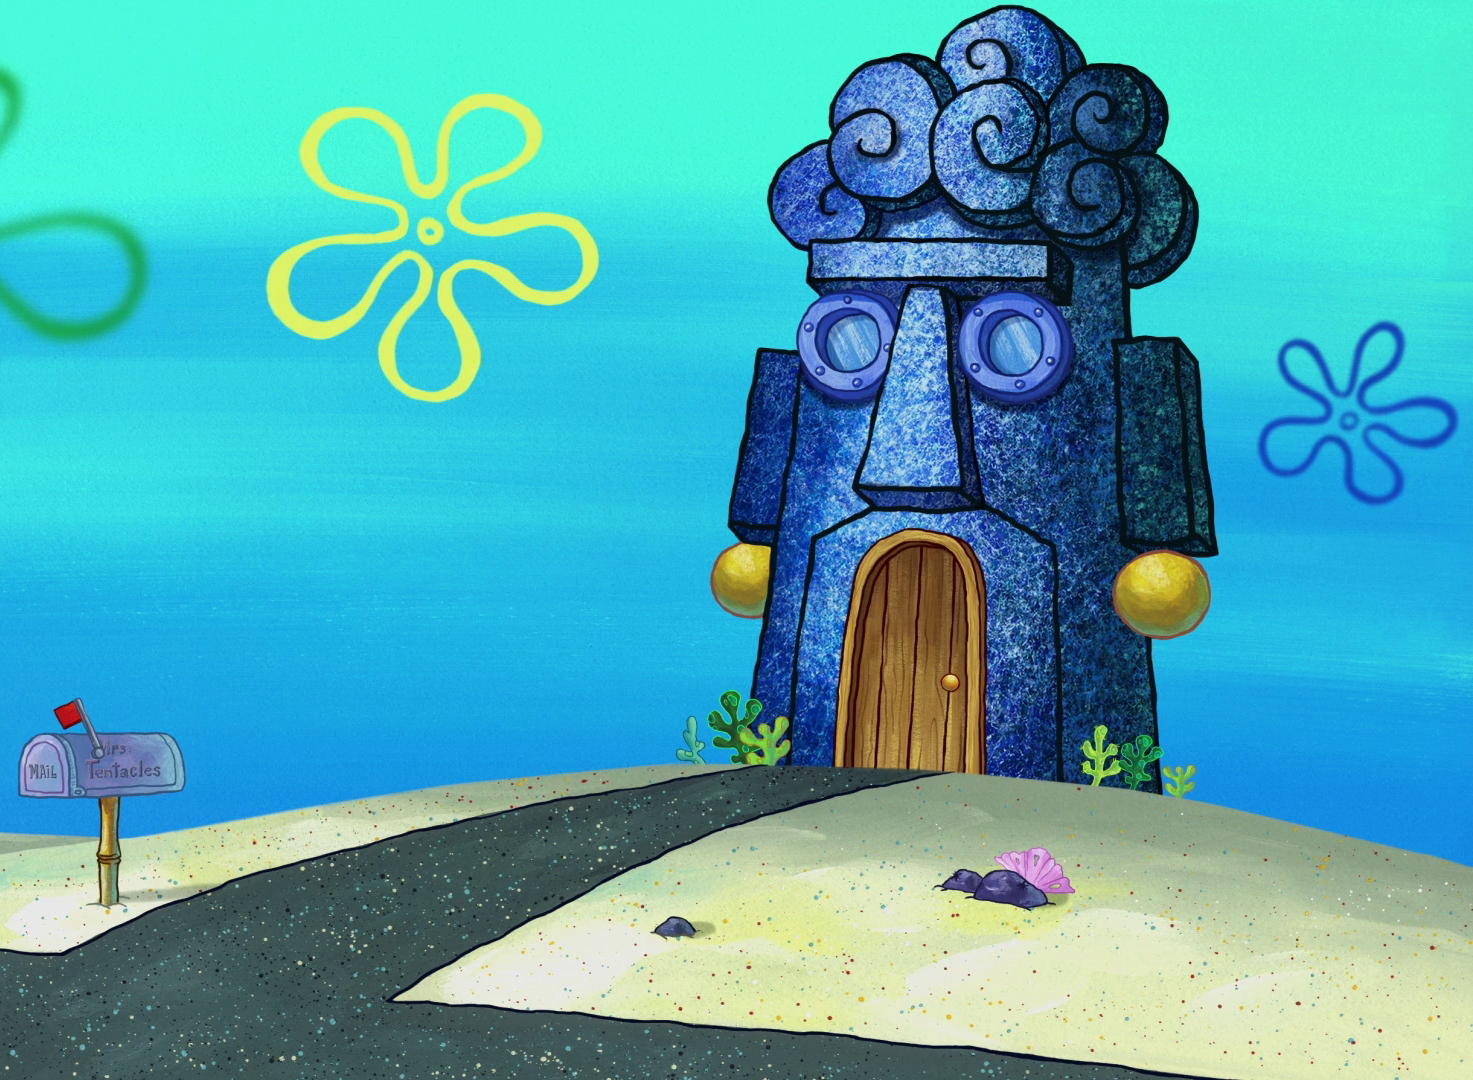 Mrs. Tentacles' house